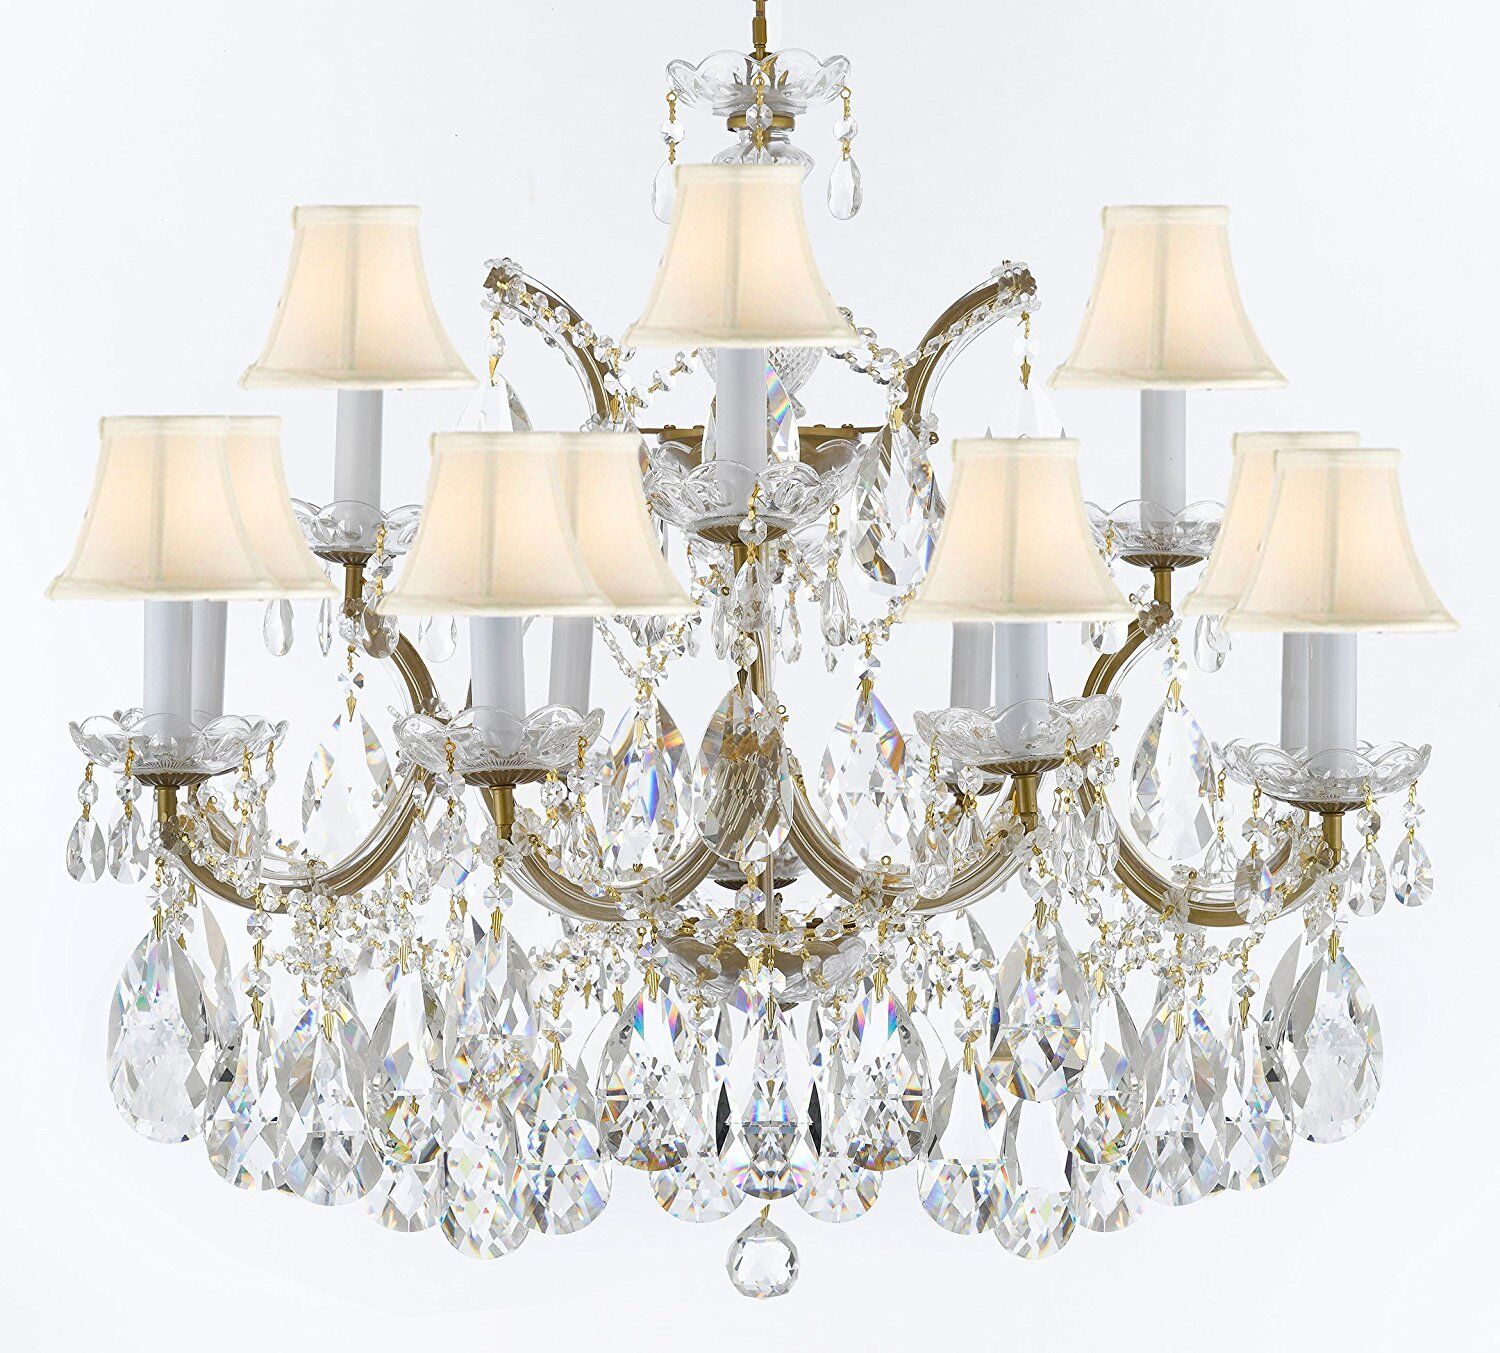 Crediton 13-Light Shaded Chandelier Finish: Gold, Shade Color: White